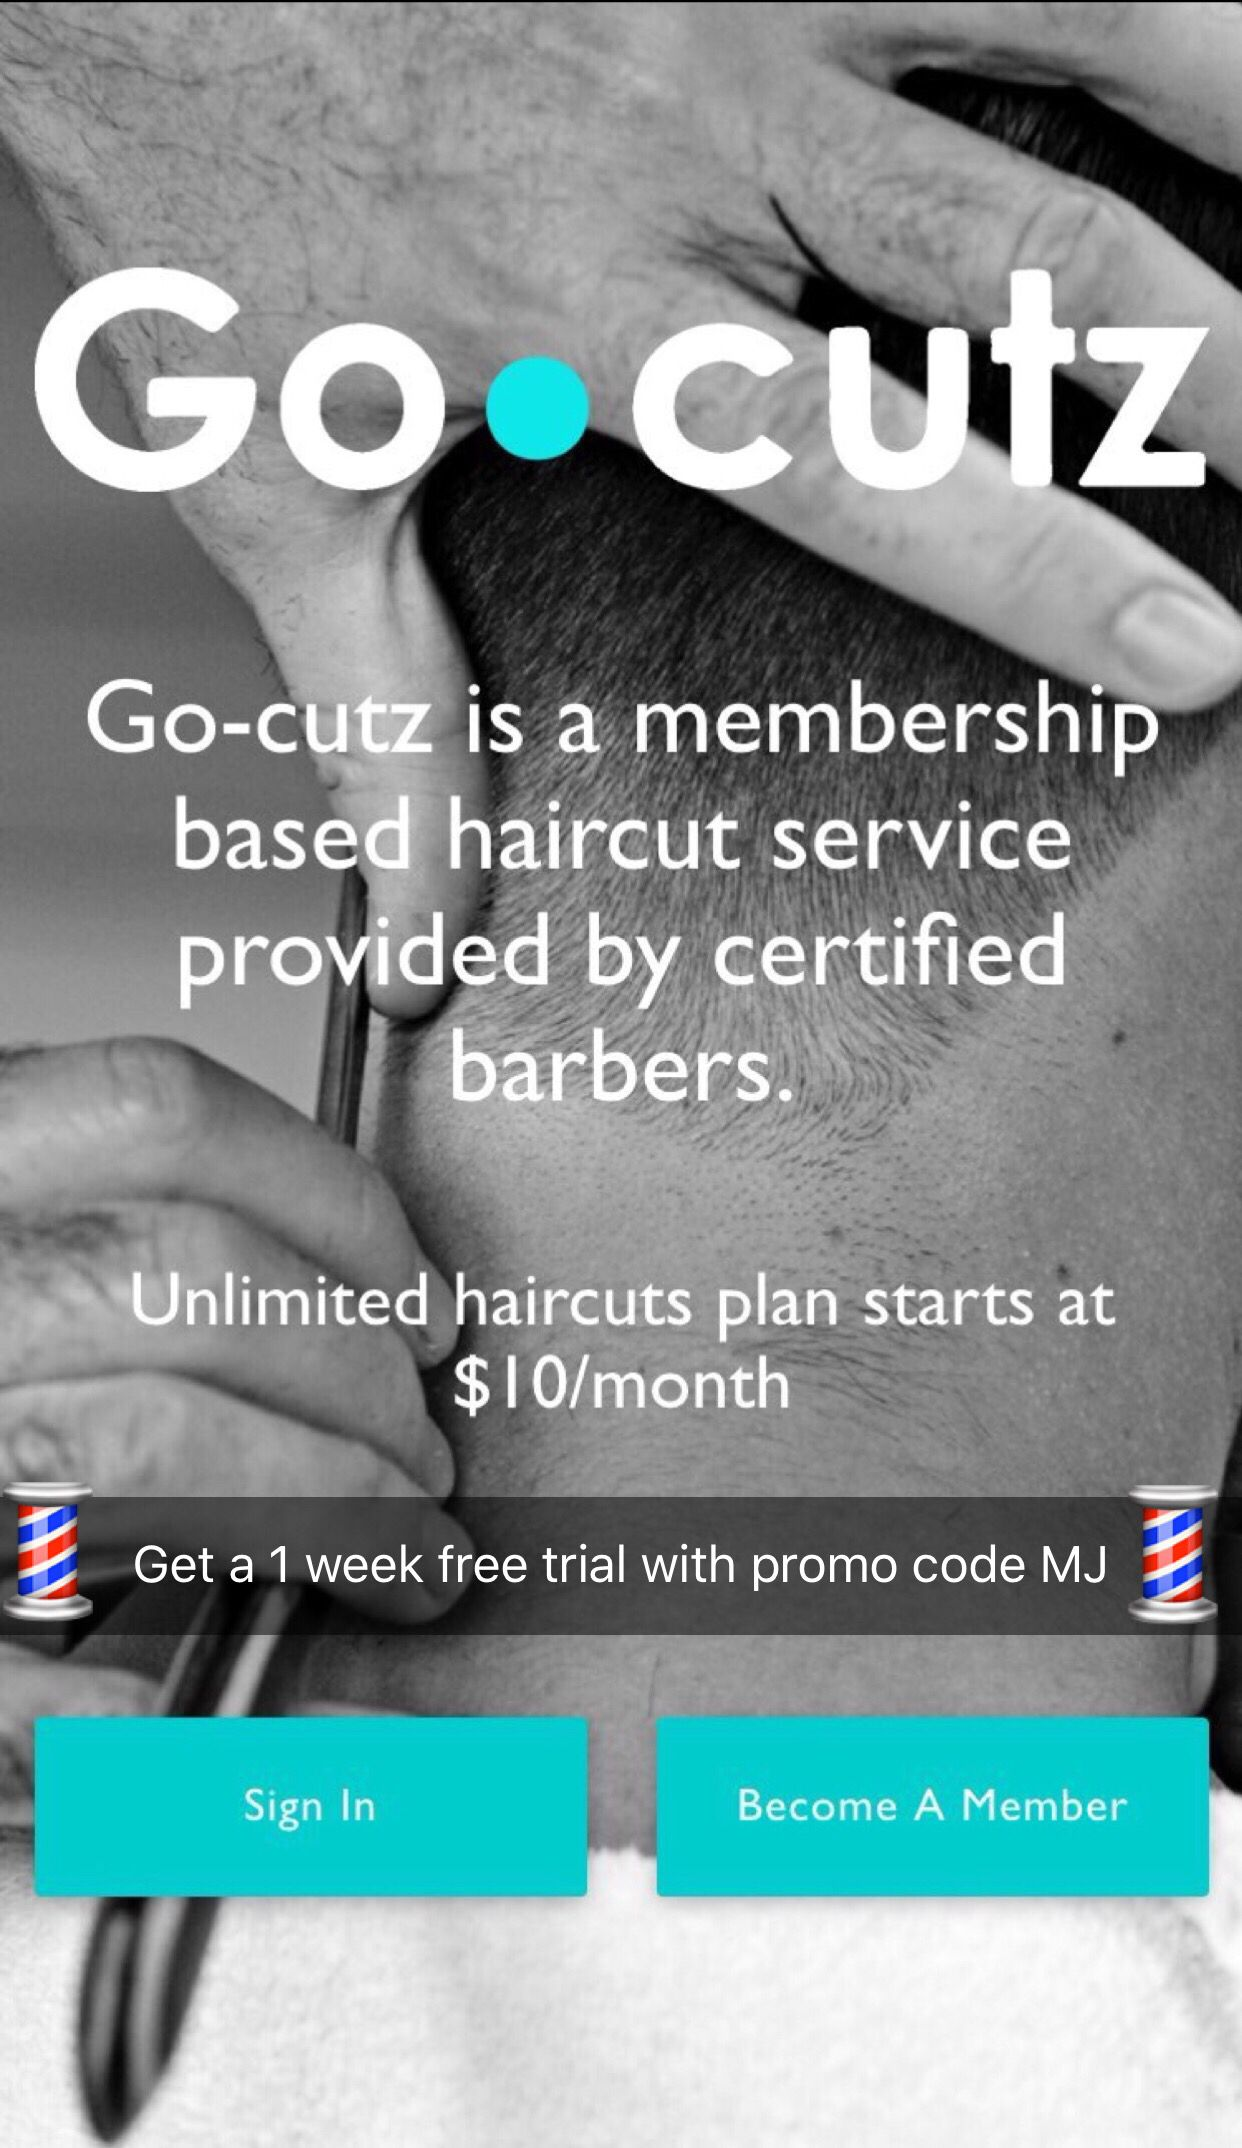 Free unlimited haircuts starting at 10 a month. Get a 1